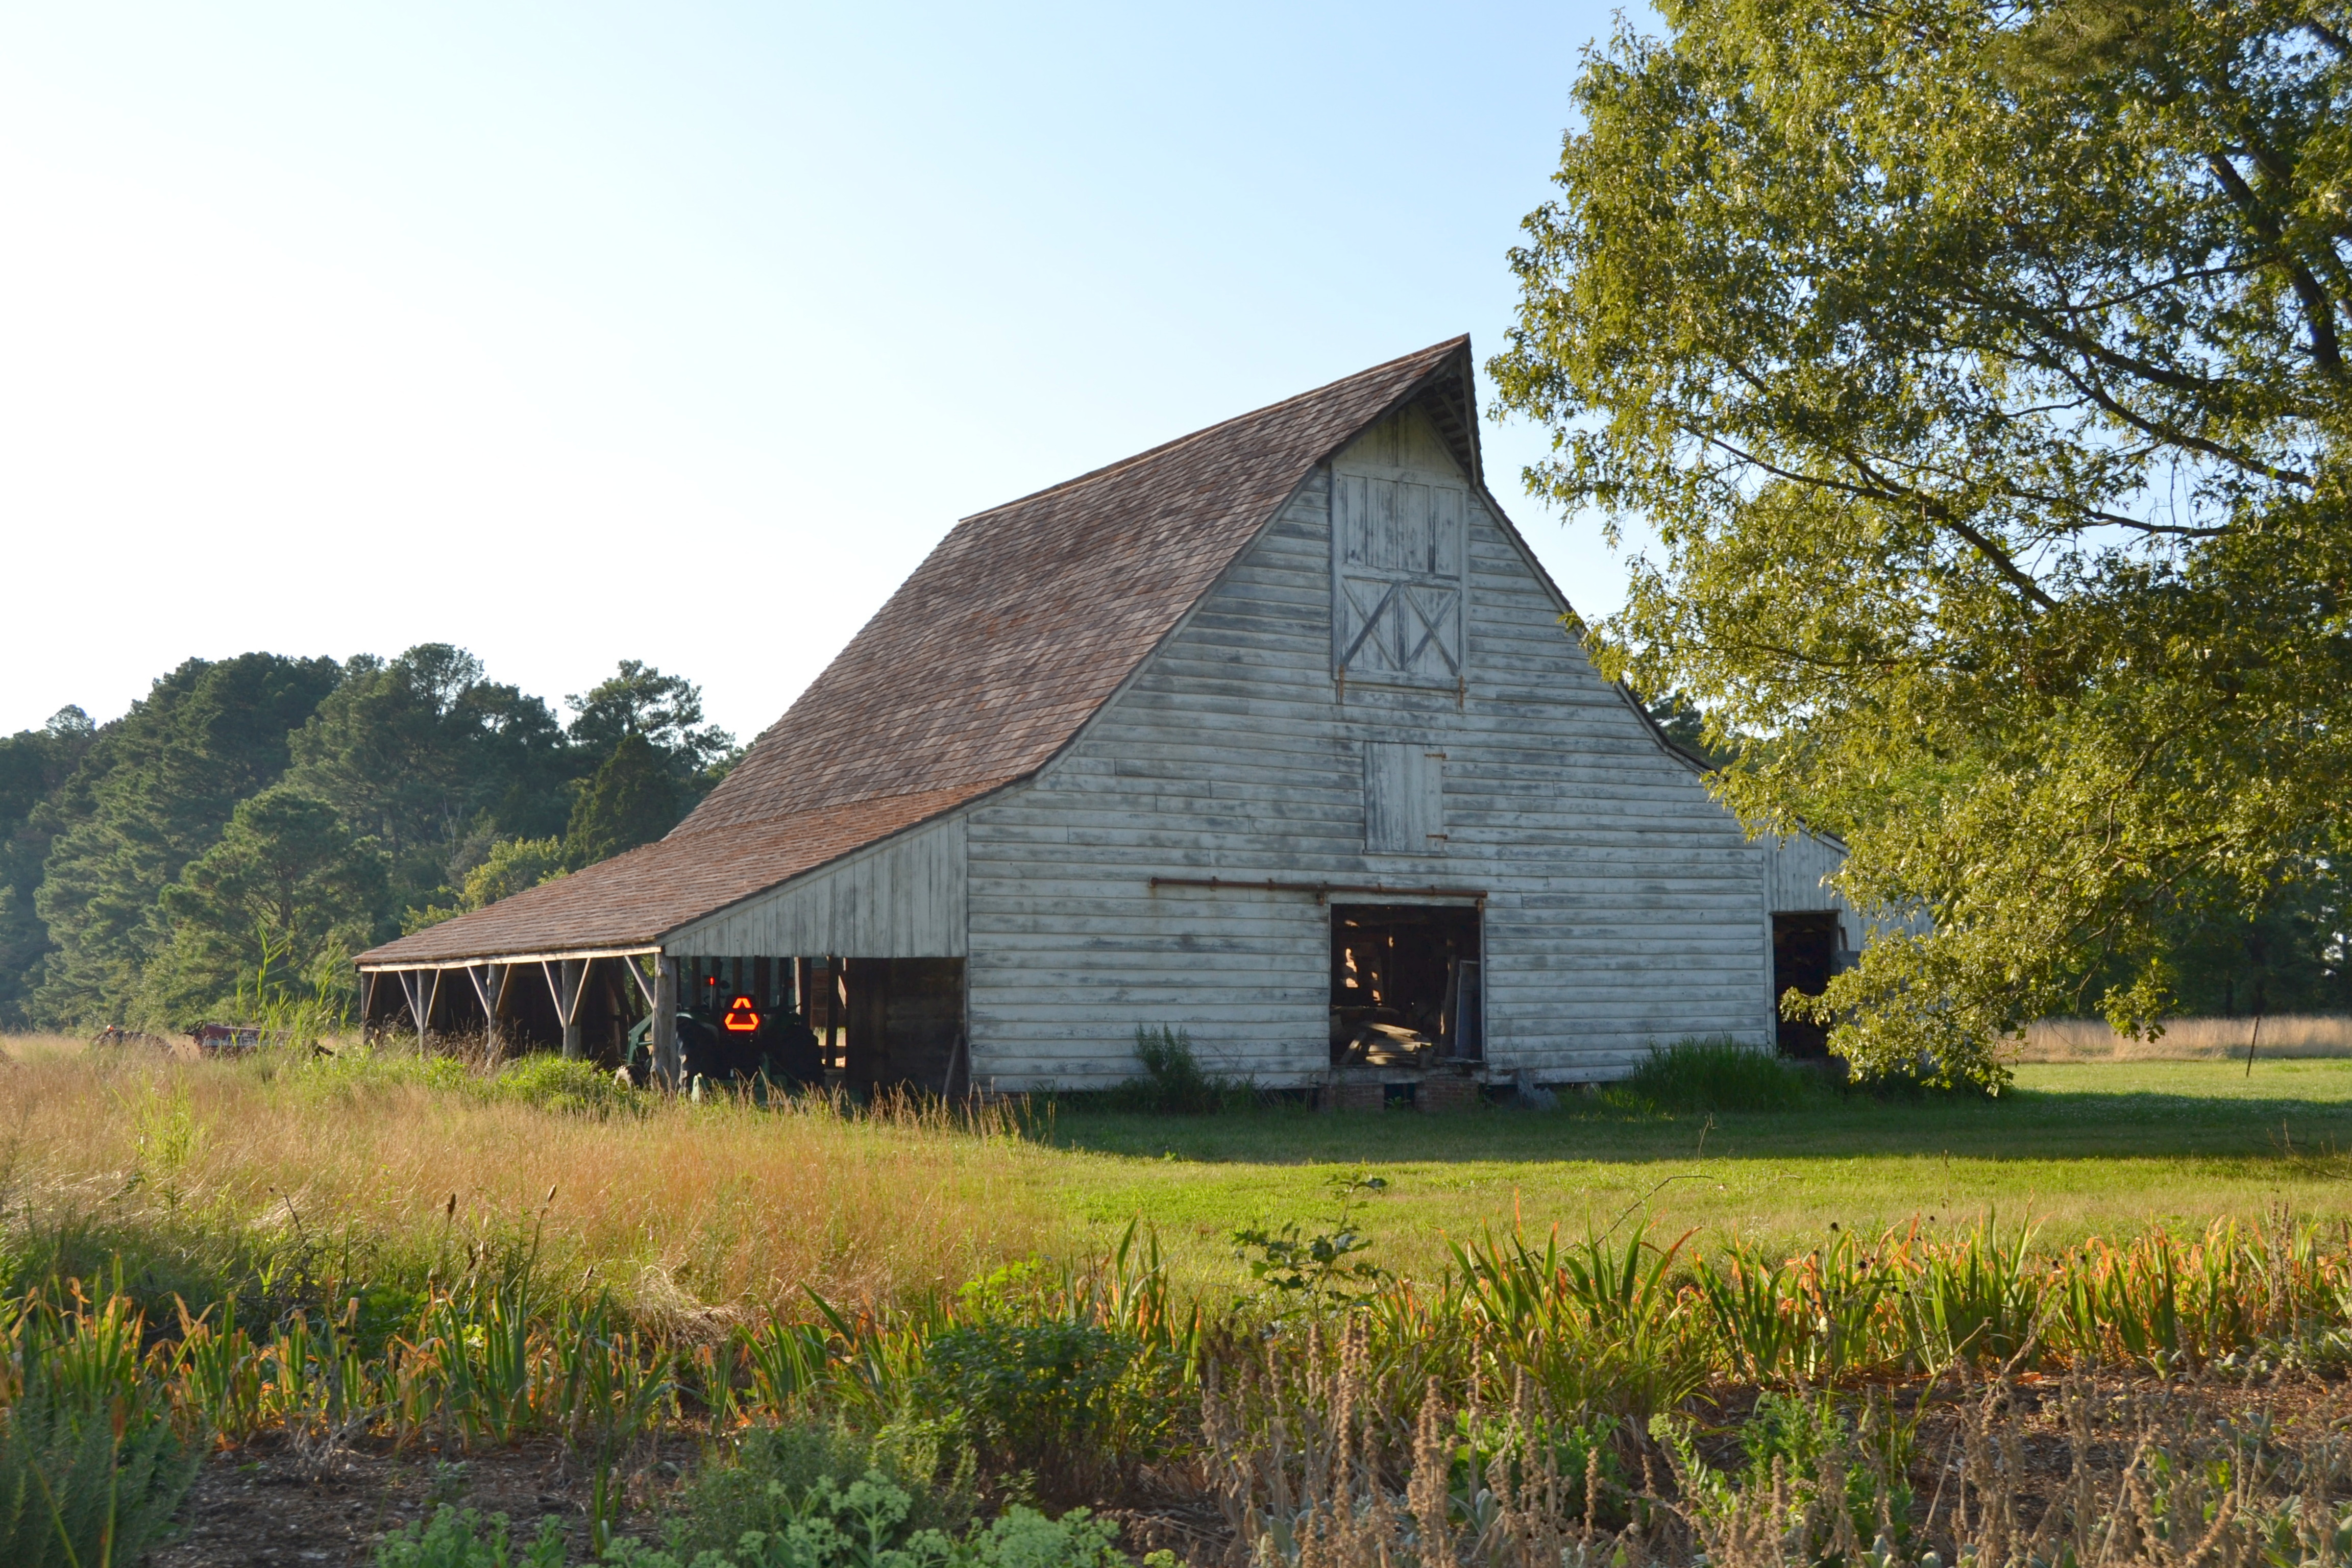 white barn | these days of mine - photo#11